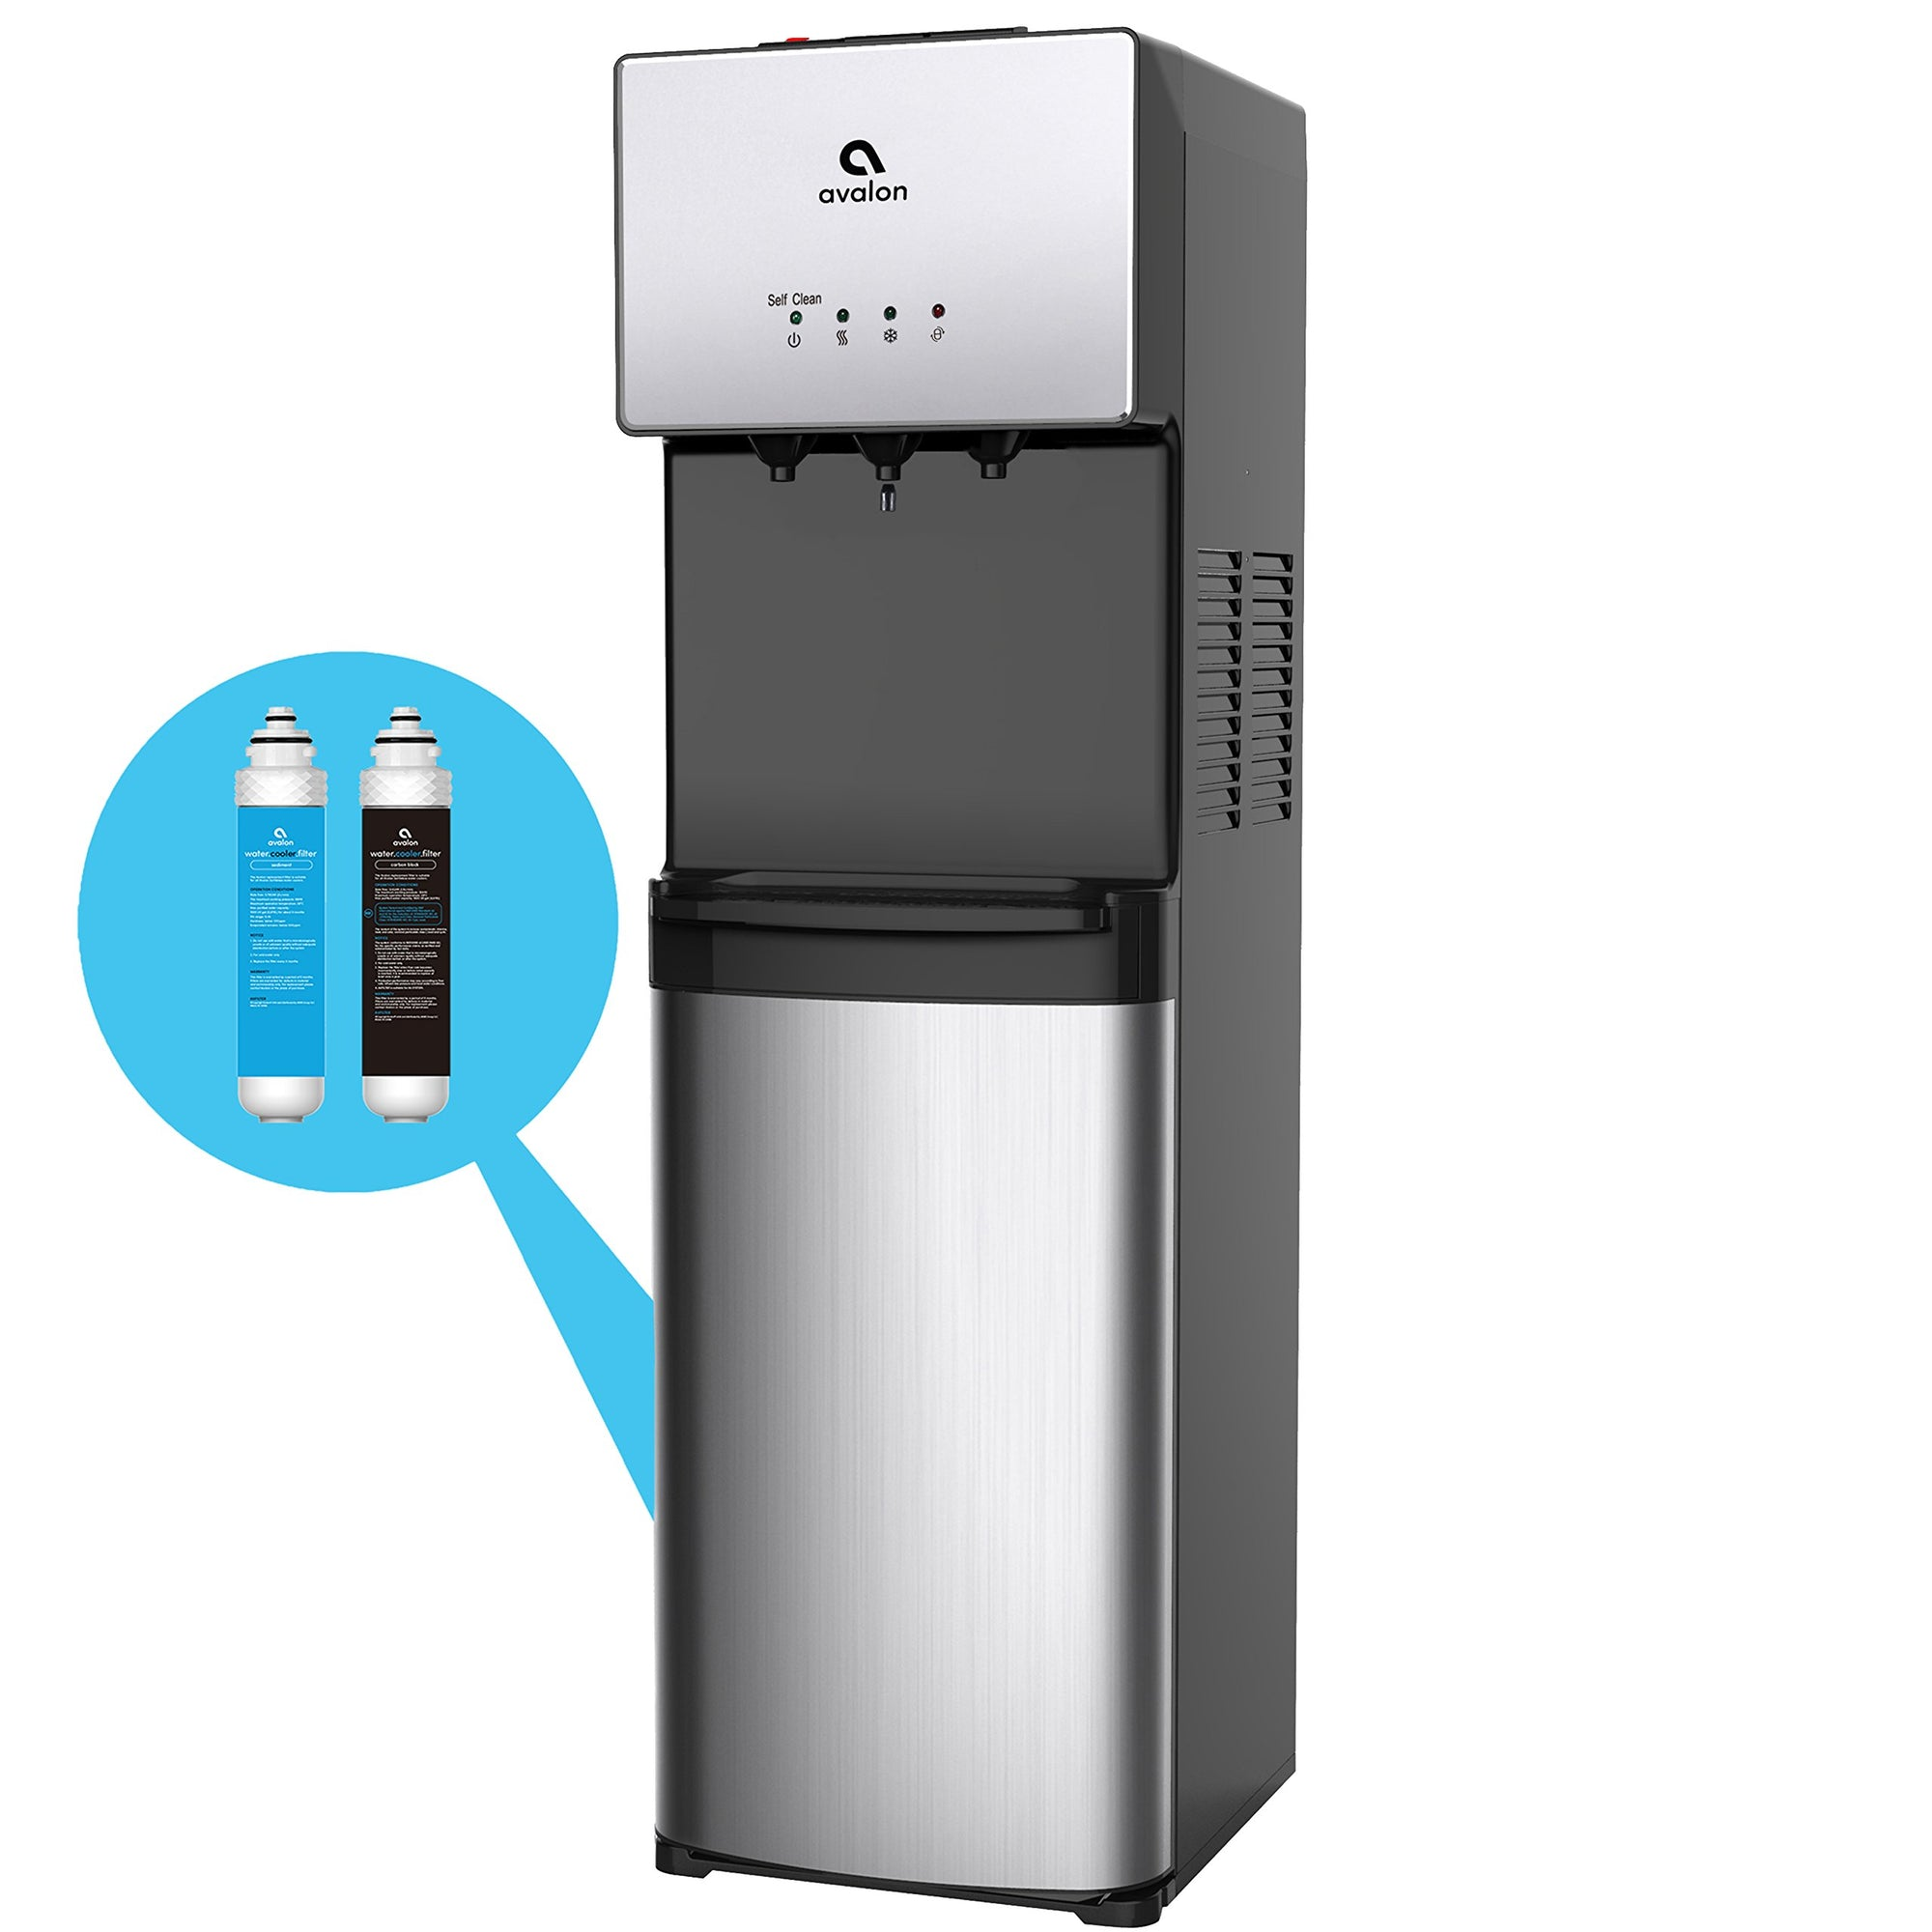 Avalon A5BOTTLELESS A5 Self Cleaning Bottleless Water Cooler Dispenser, Stainless Steel